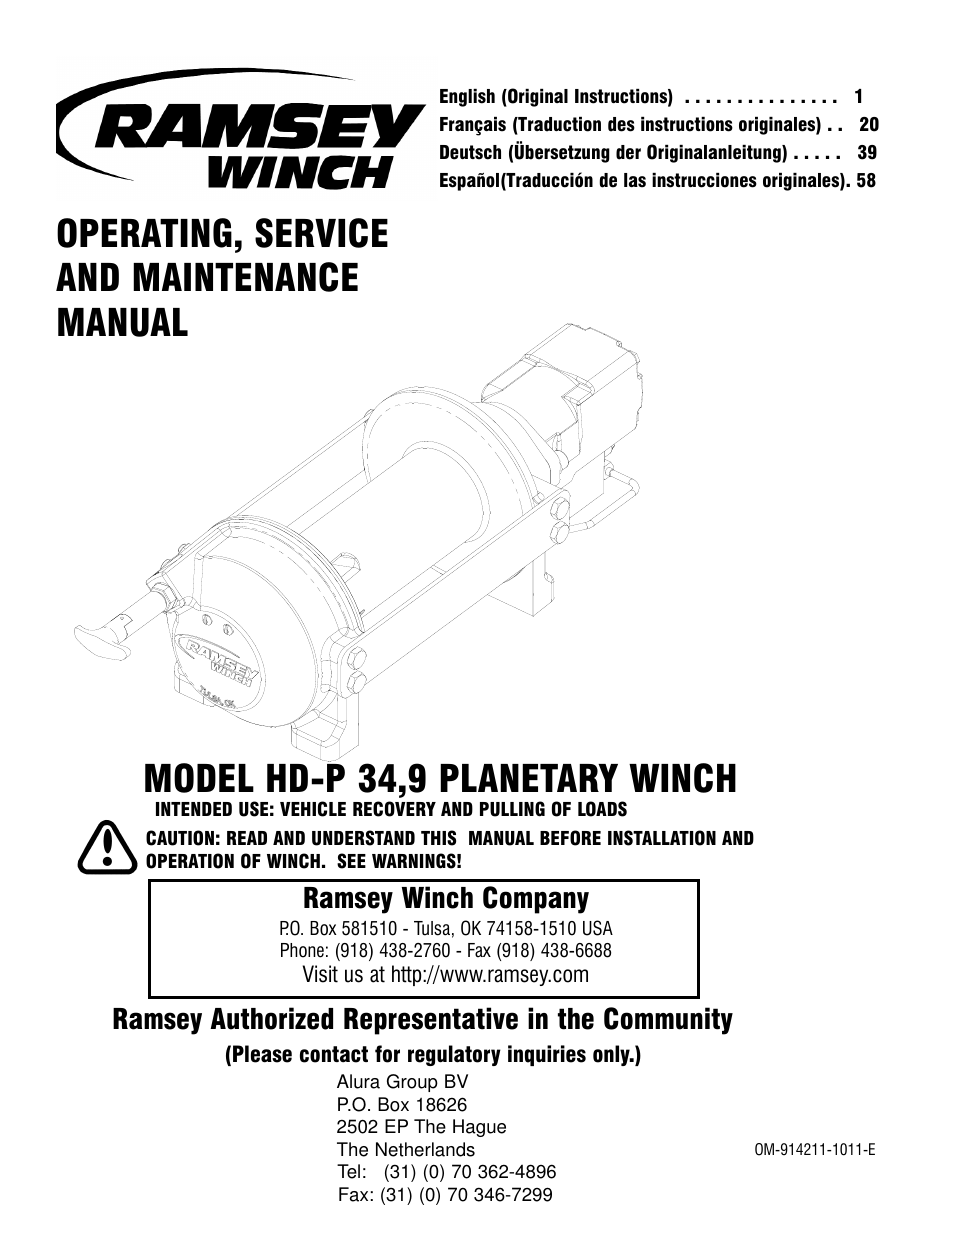 Ramsey Winch Wiring Directions Data Schema 8000 Diagram Hd P 34 9 User Manual 78 Pages